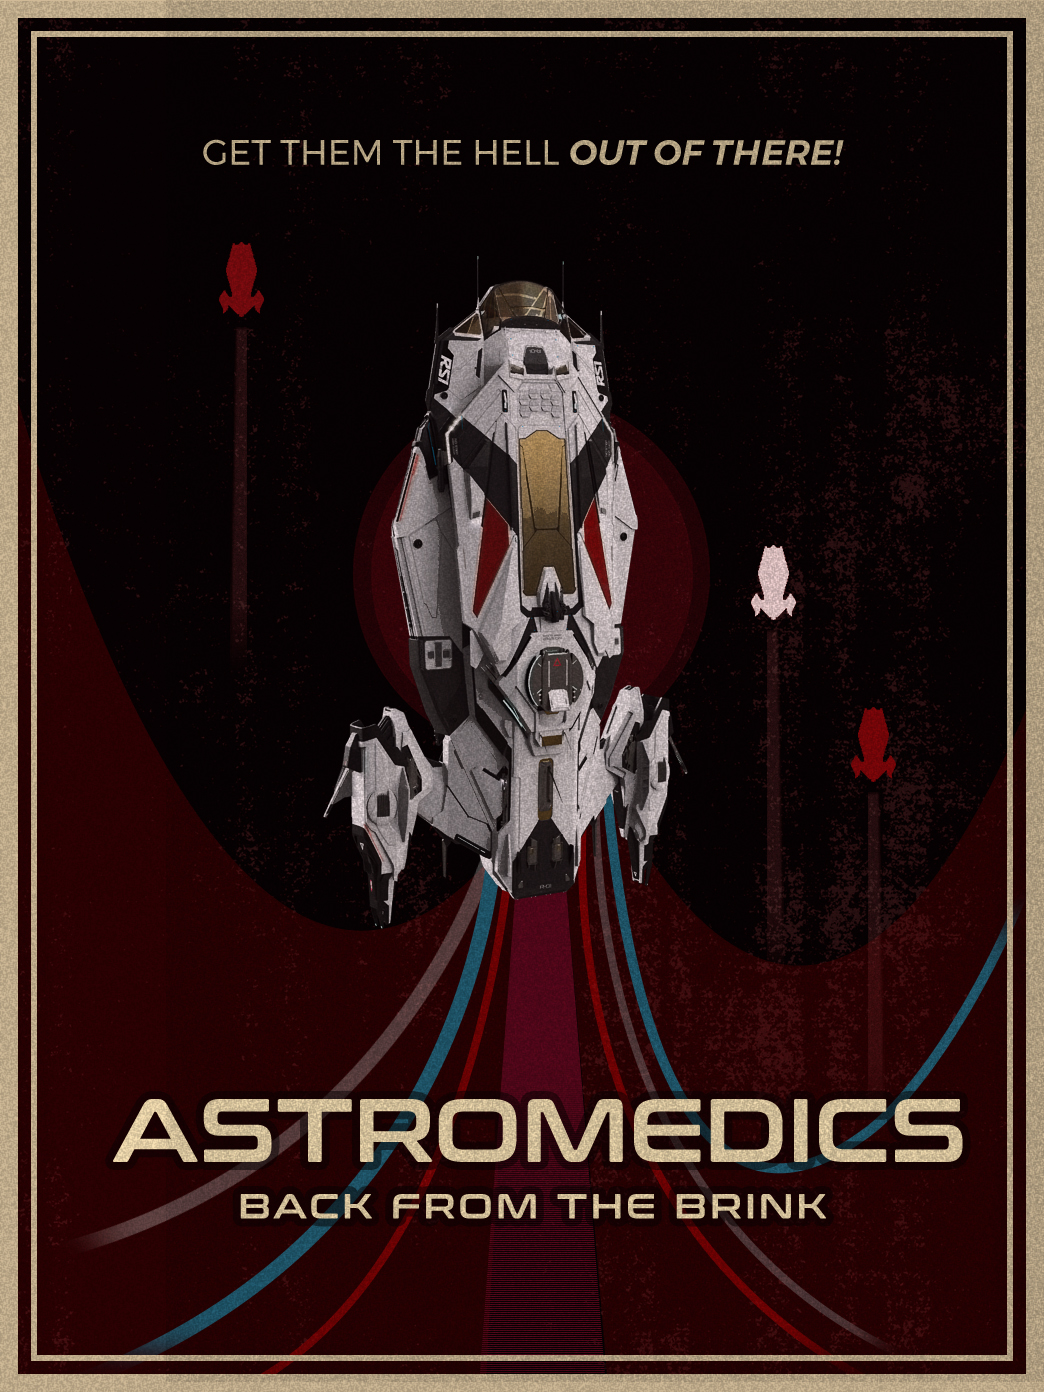 Poster of the Apollo, Astromedics, back from the Brink